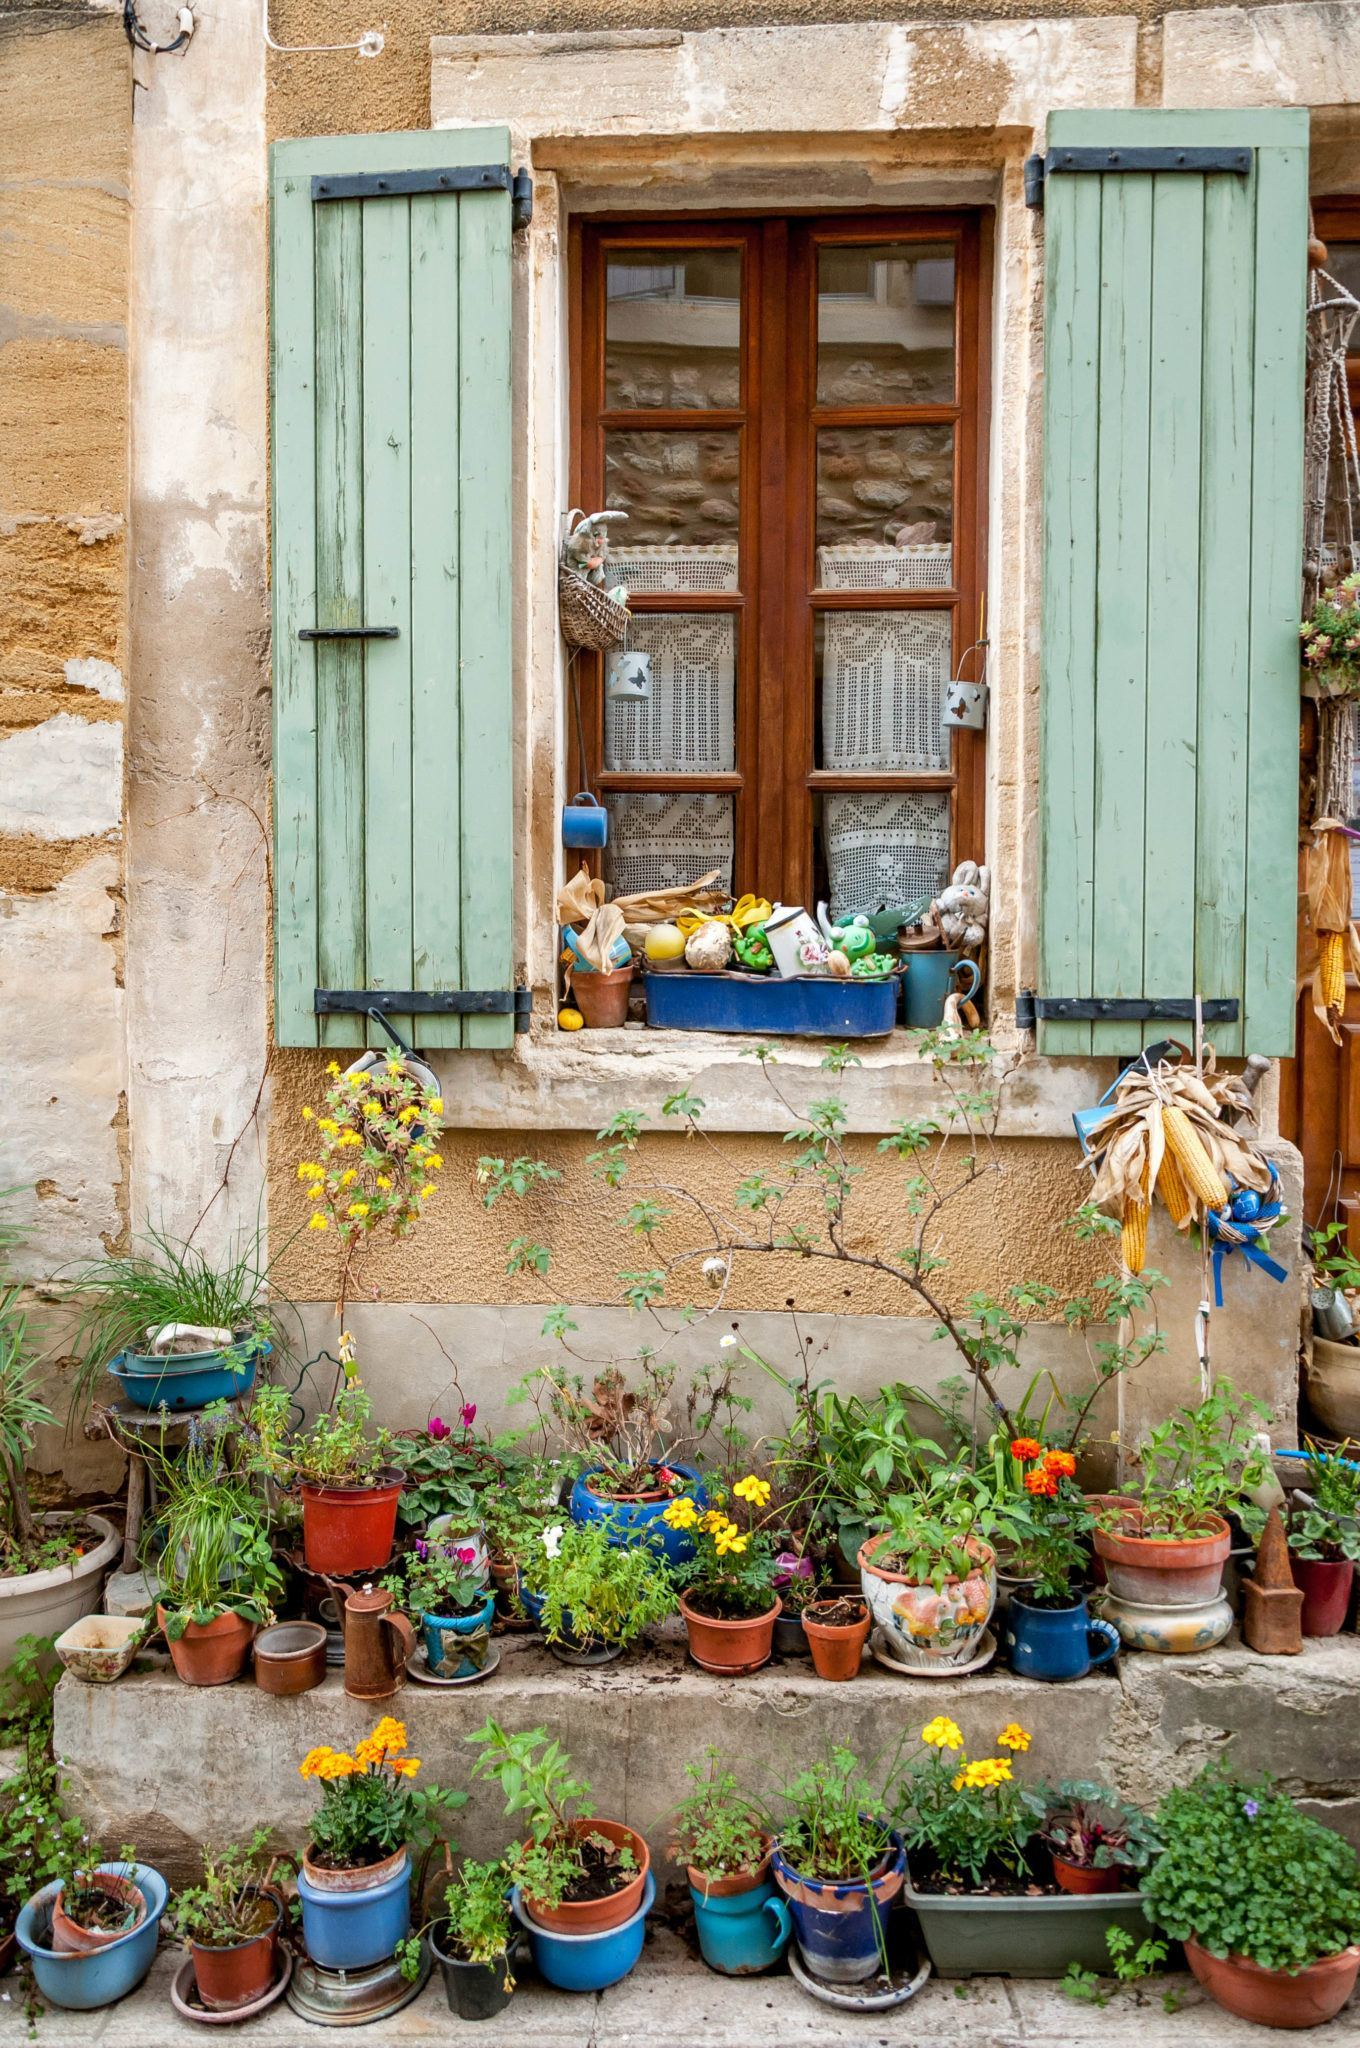 Colorful window with potted plants in Gigondas, France